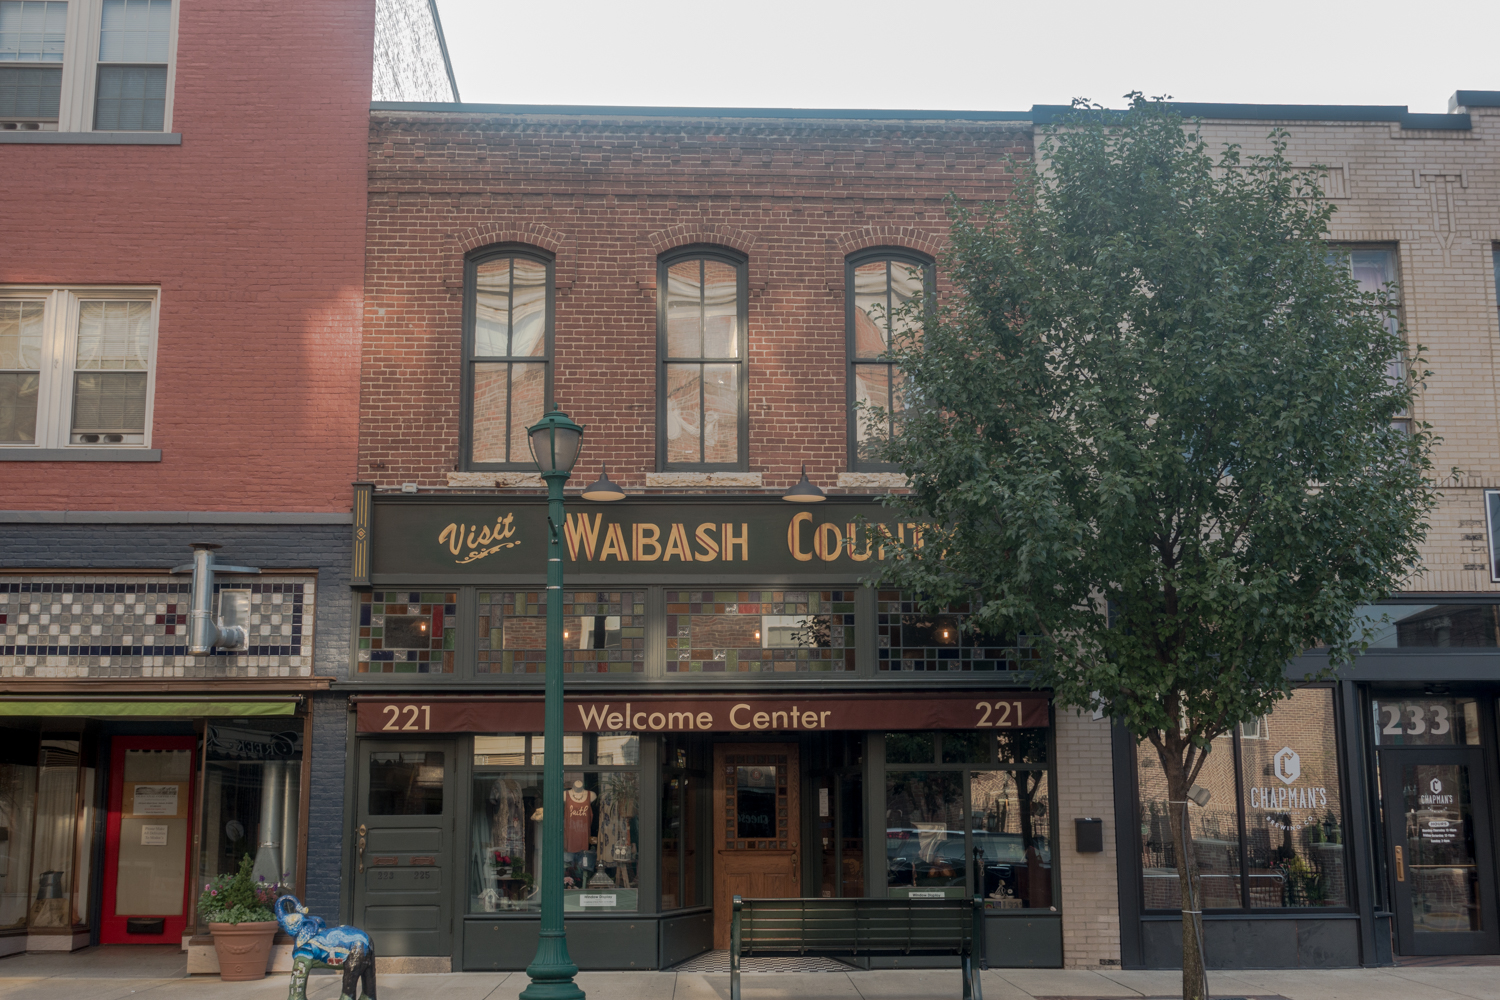 Travel Guide to Wabash, Indiana. What to see & do in this charming town!